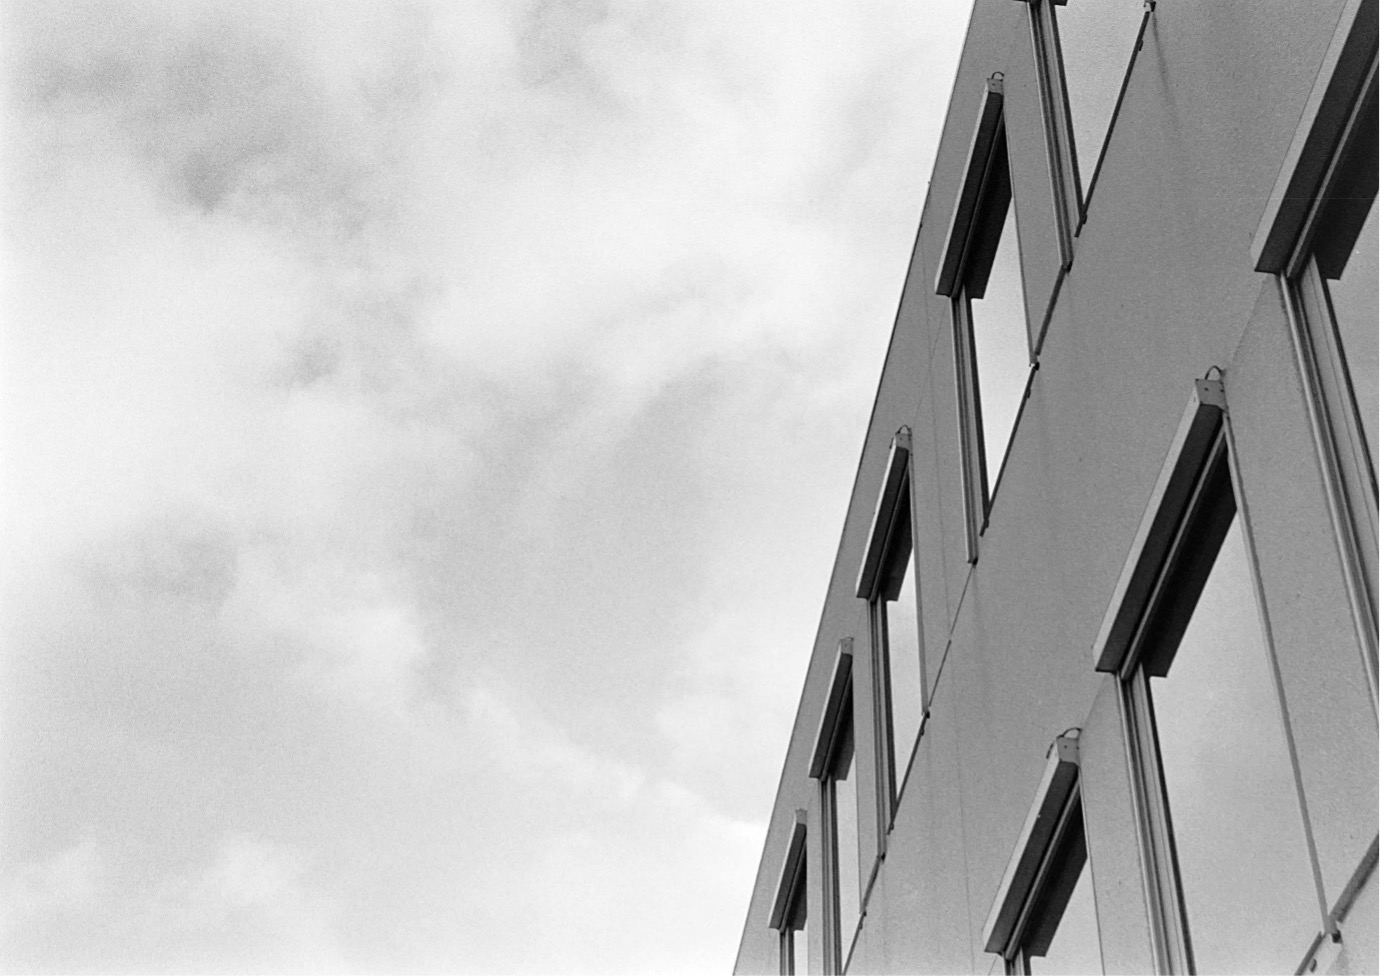 Building and sky (Pic: Hubregt Visser)